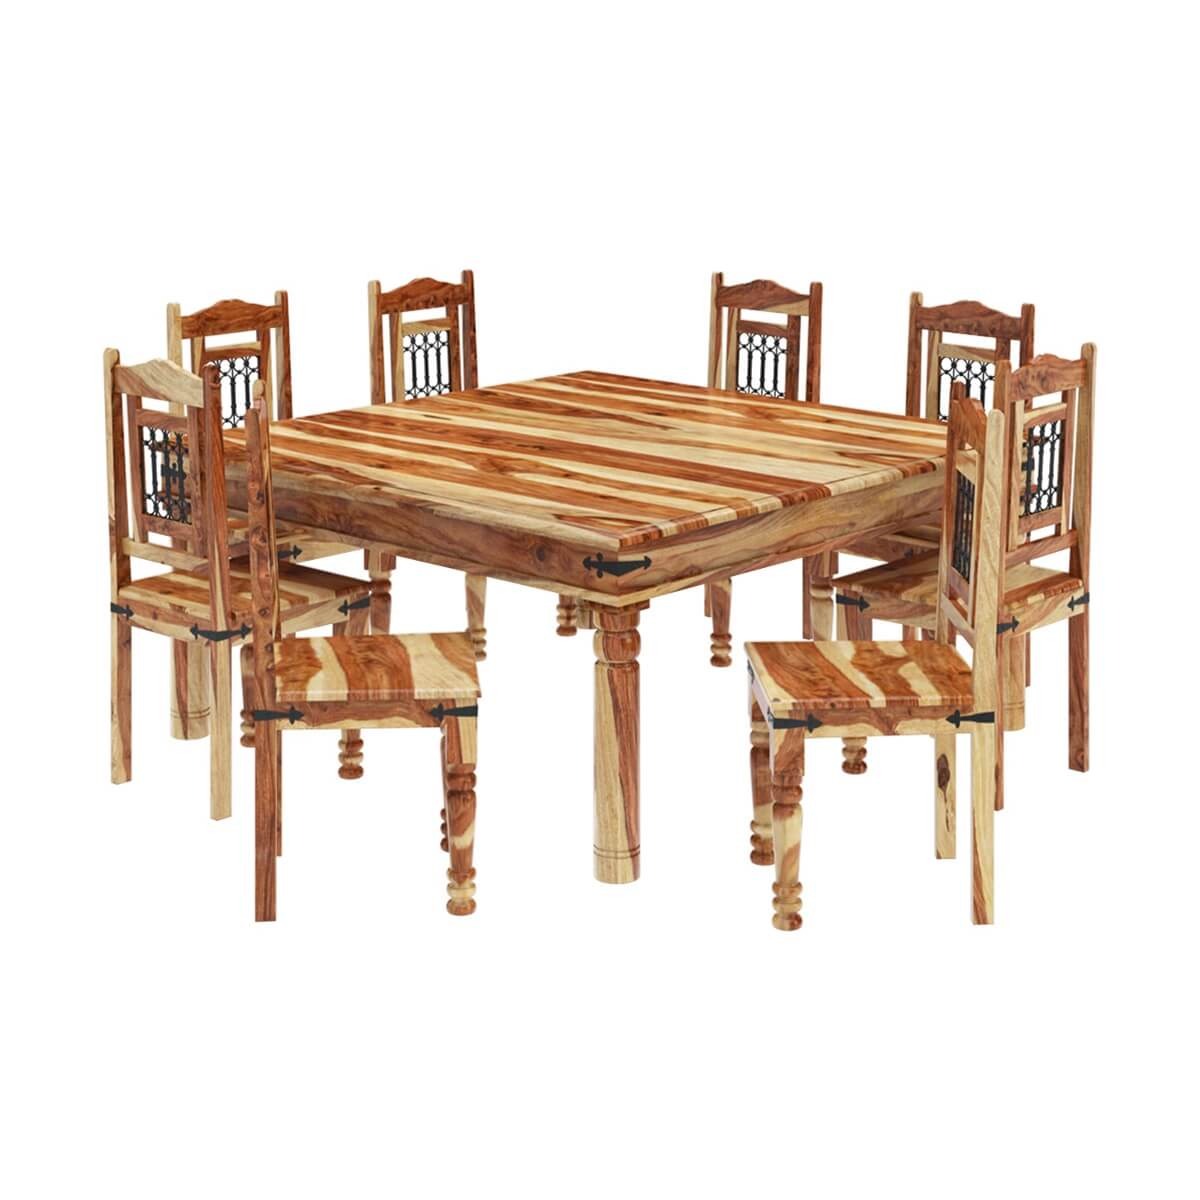 8 Chair Square Dining Table: Peoria Solid Wood Large Square Dining Table & Chair Set